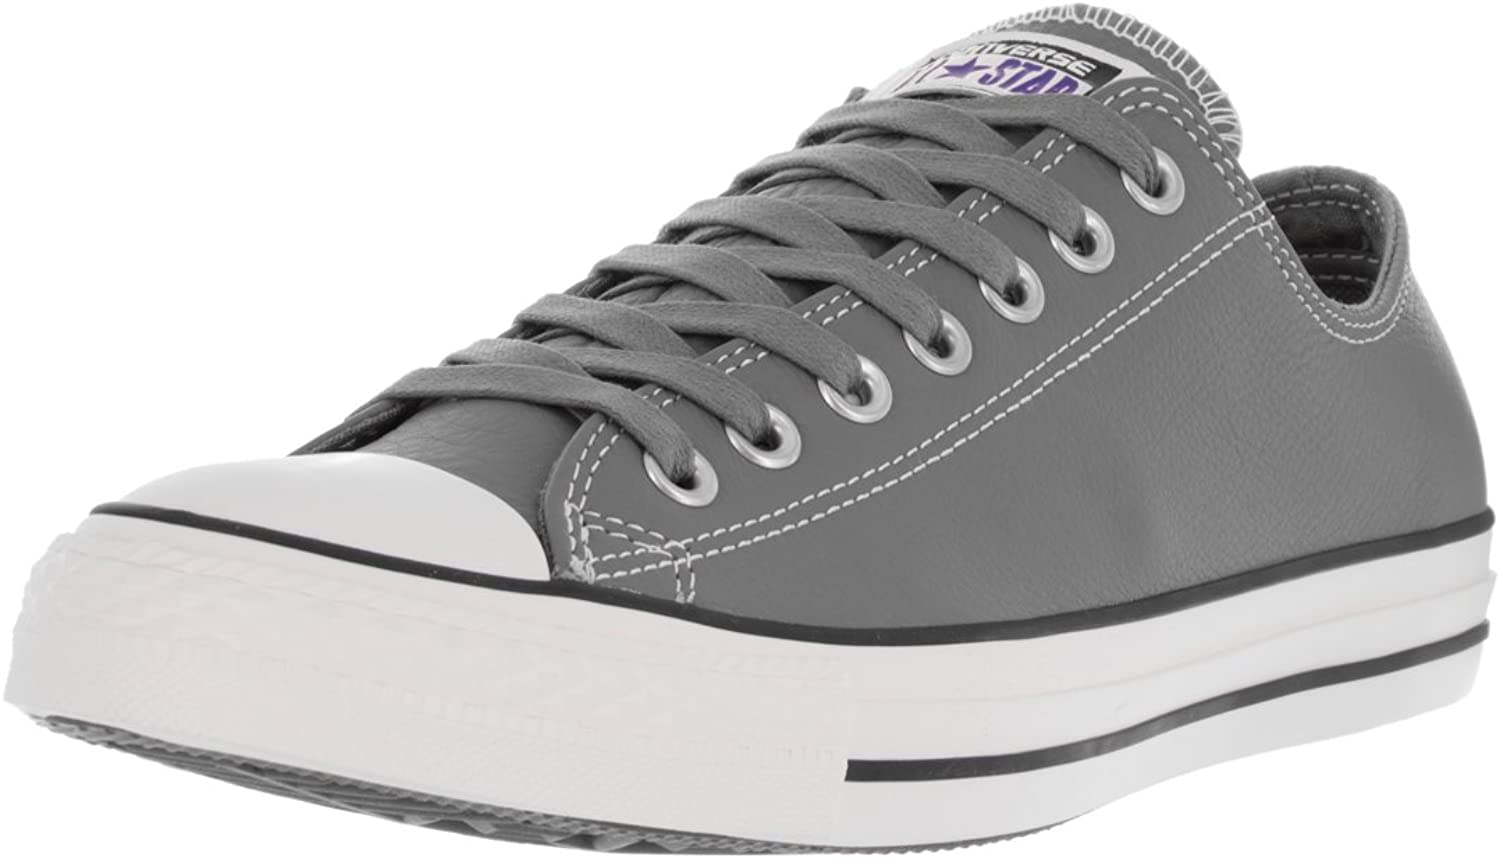 Converse Chuck Taylor All Star Shield Higha 'top Unisex